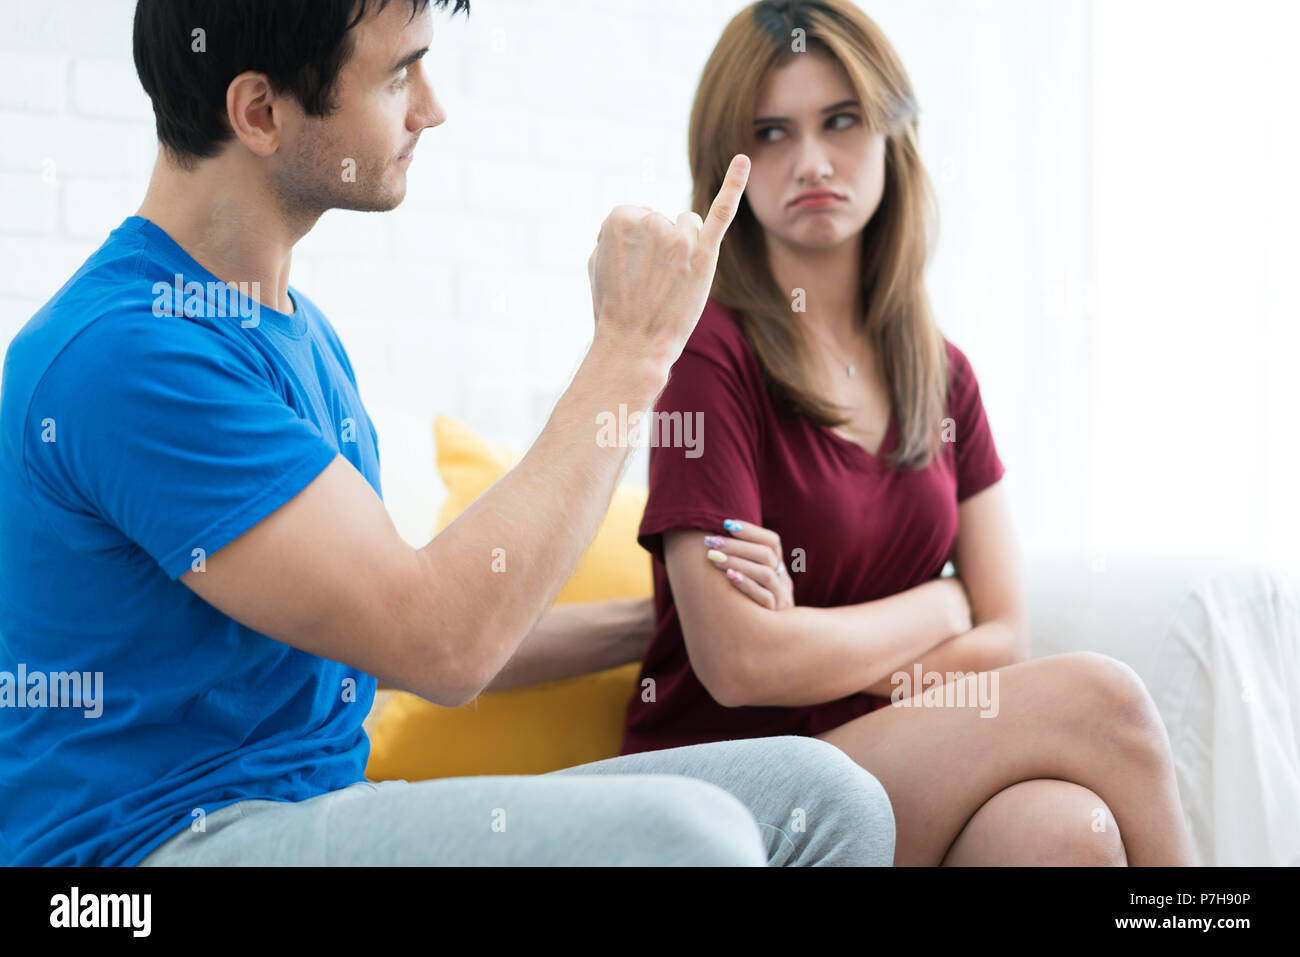 How to reconcile with a man